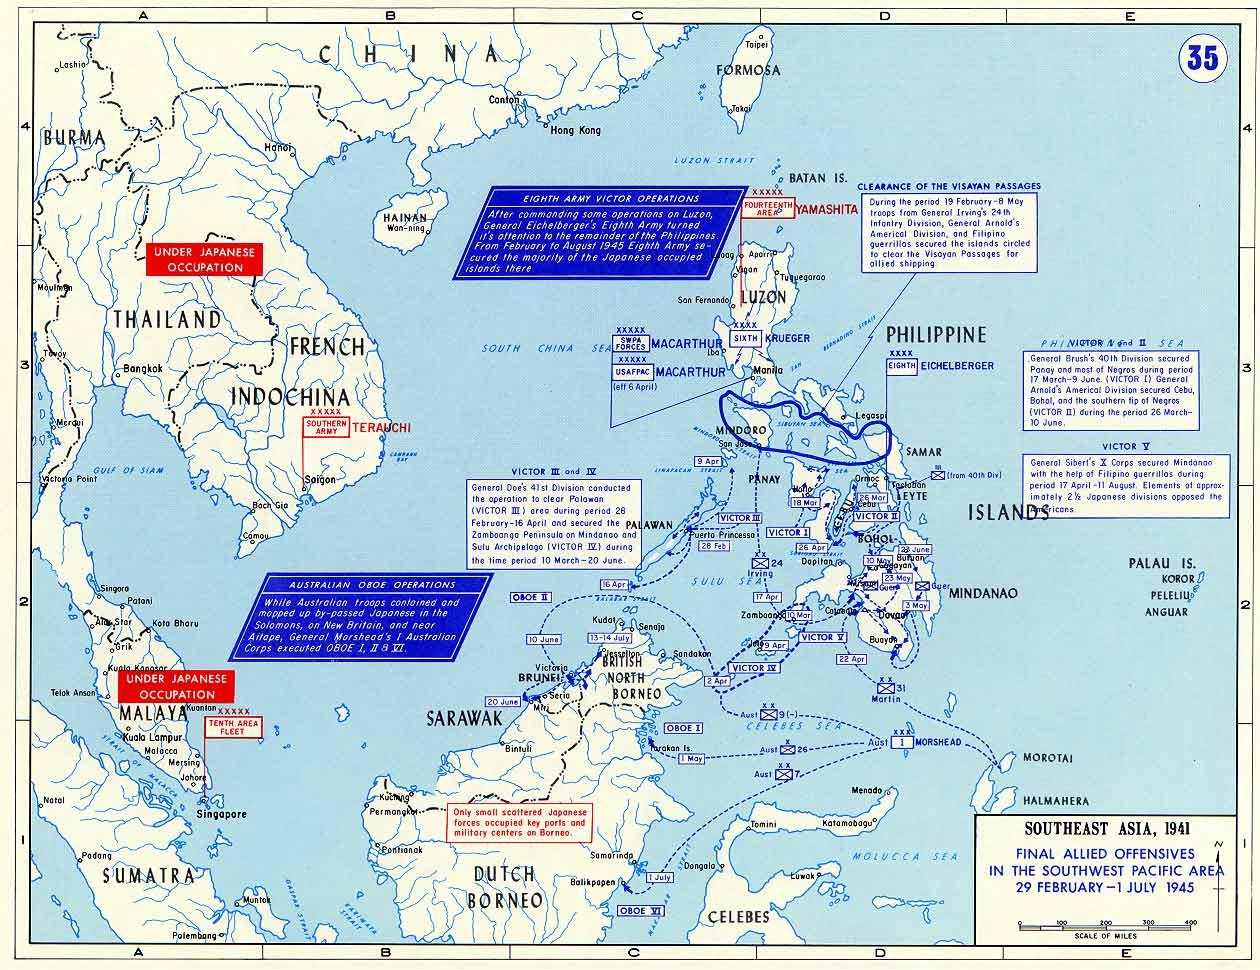 Map Map Of Final Allied Offensives In The Southwest